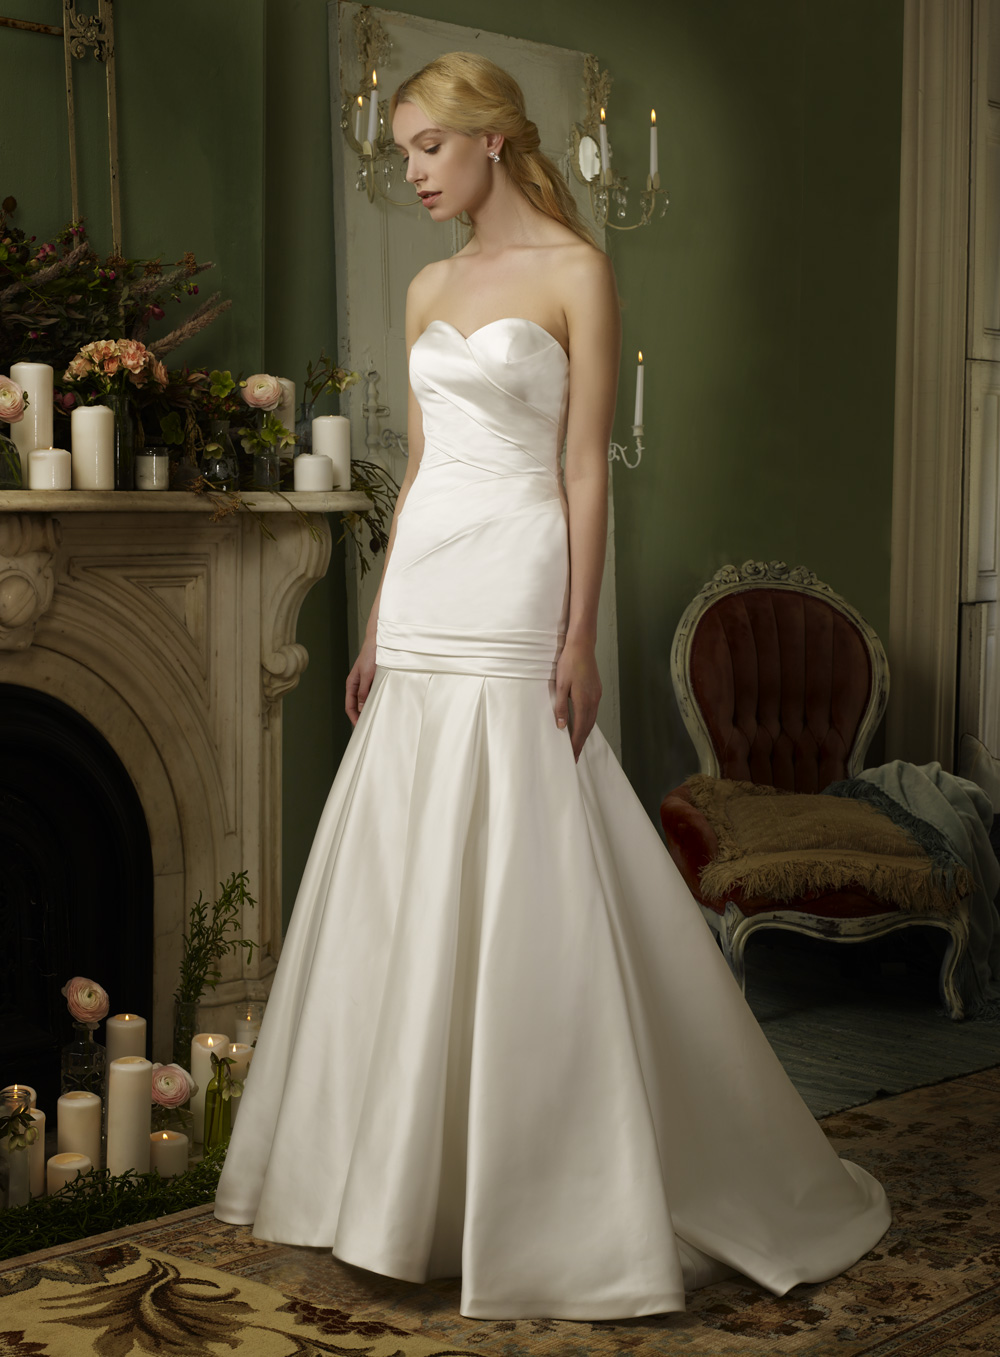 RBRita Bridal Gown by Robert Bullock Bride Front